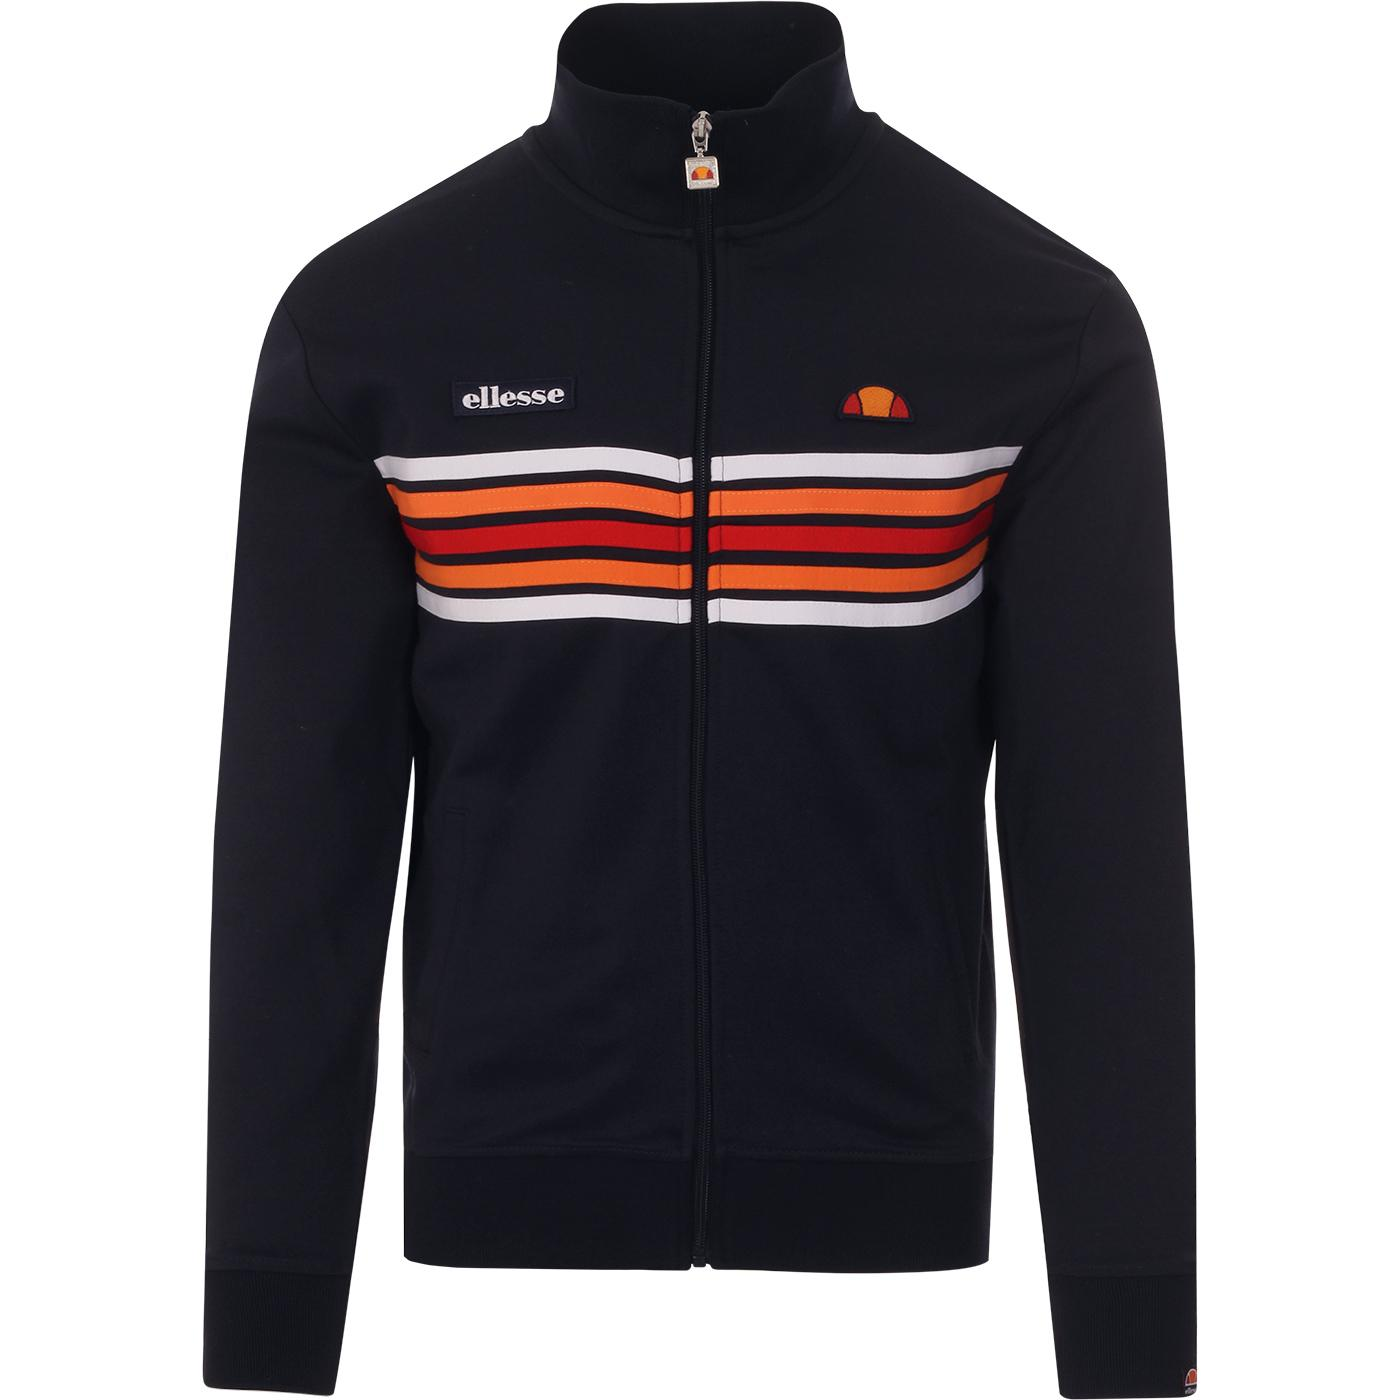 Vicenza ELLESSE Retro 80s Chest Stripe Track Top N